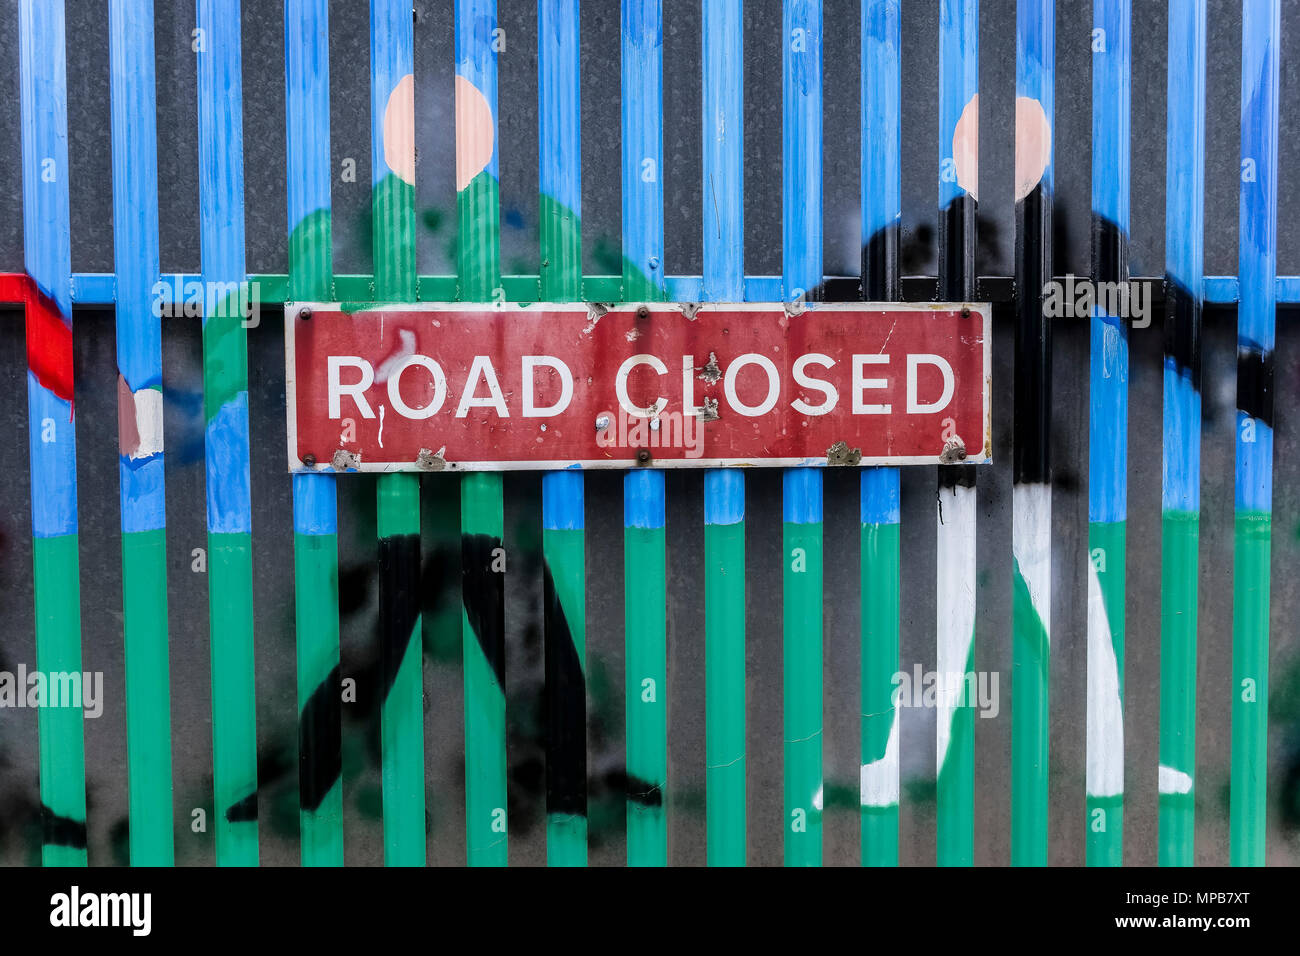 Road closed sign. Security iron gate separating Catholic and Protestant communities, at Belfast peace wall. Northern Ireland, United Kingdom, UK - Stock Image